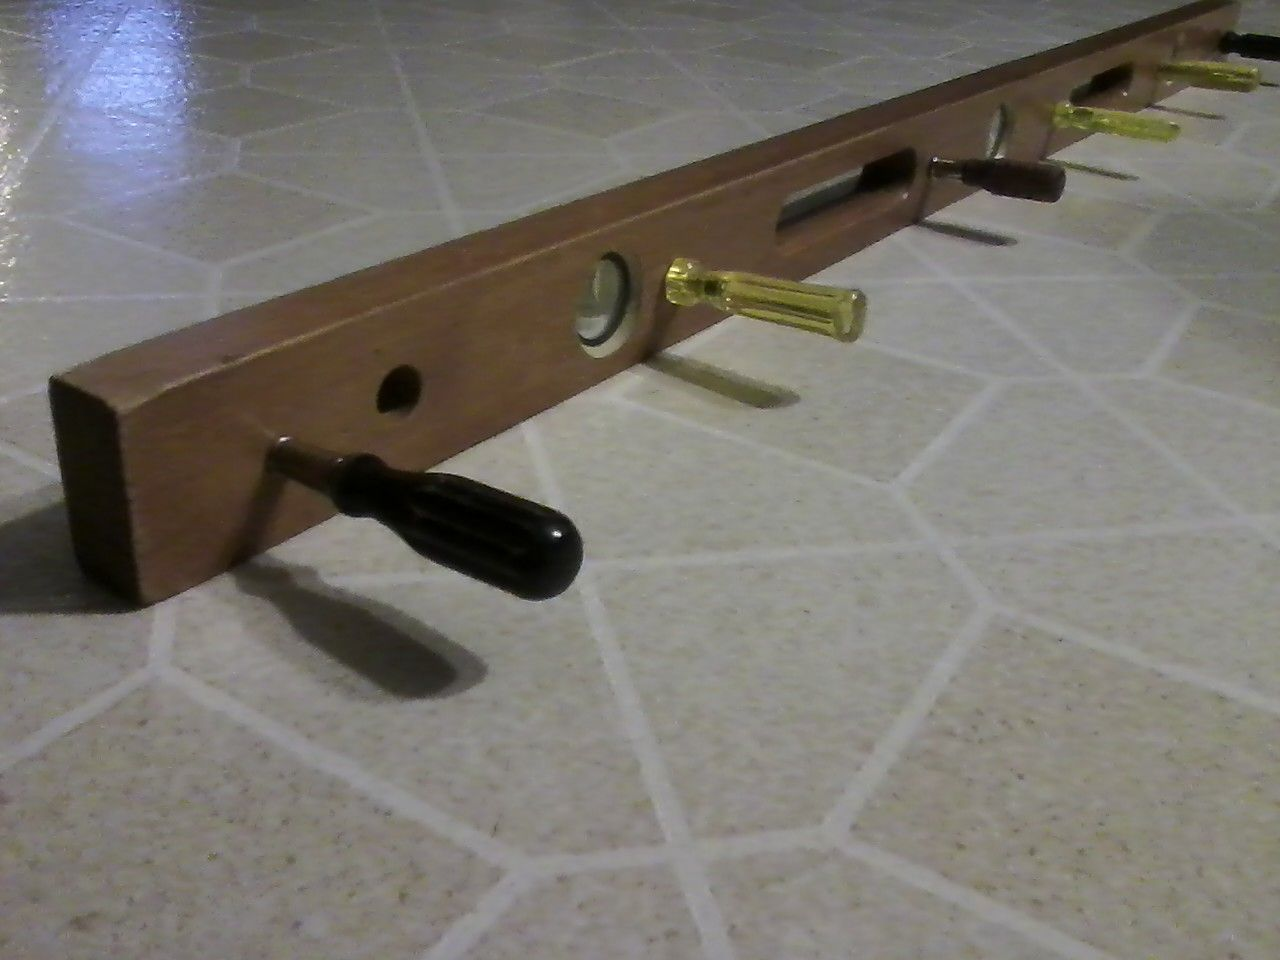 4 Old Wooden Level With Vintage Screwdrivers To Create A Great Coat